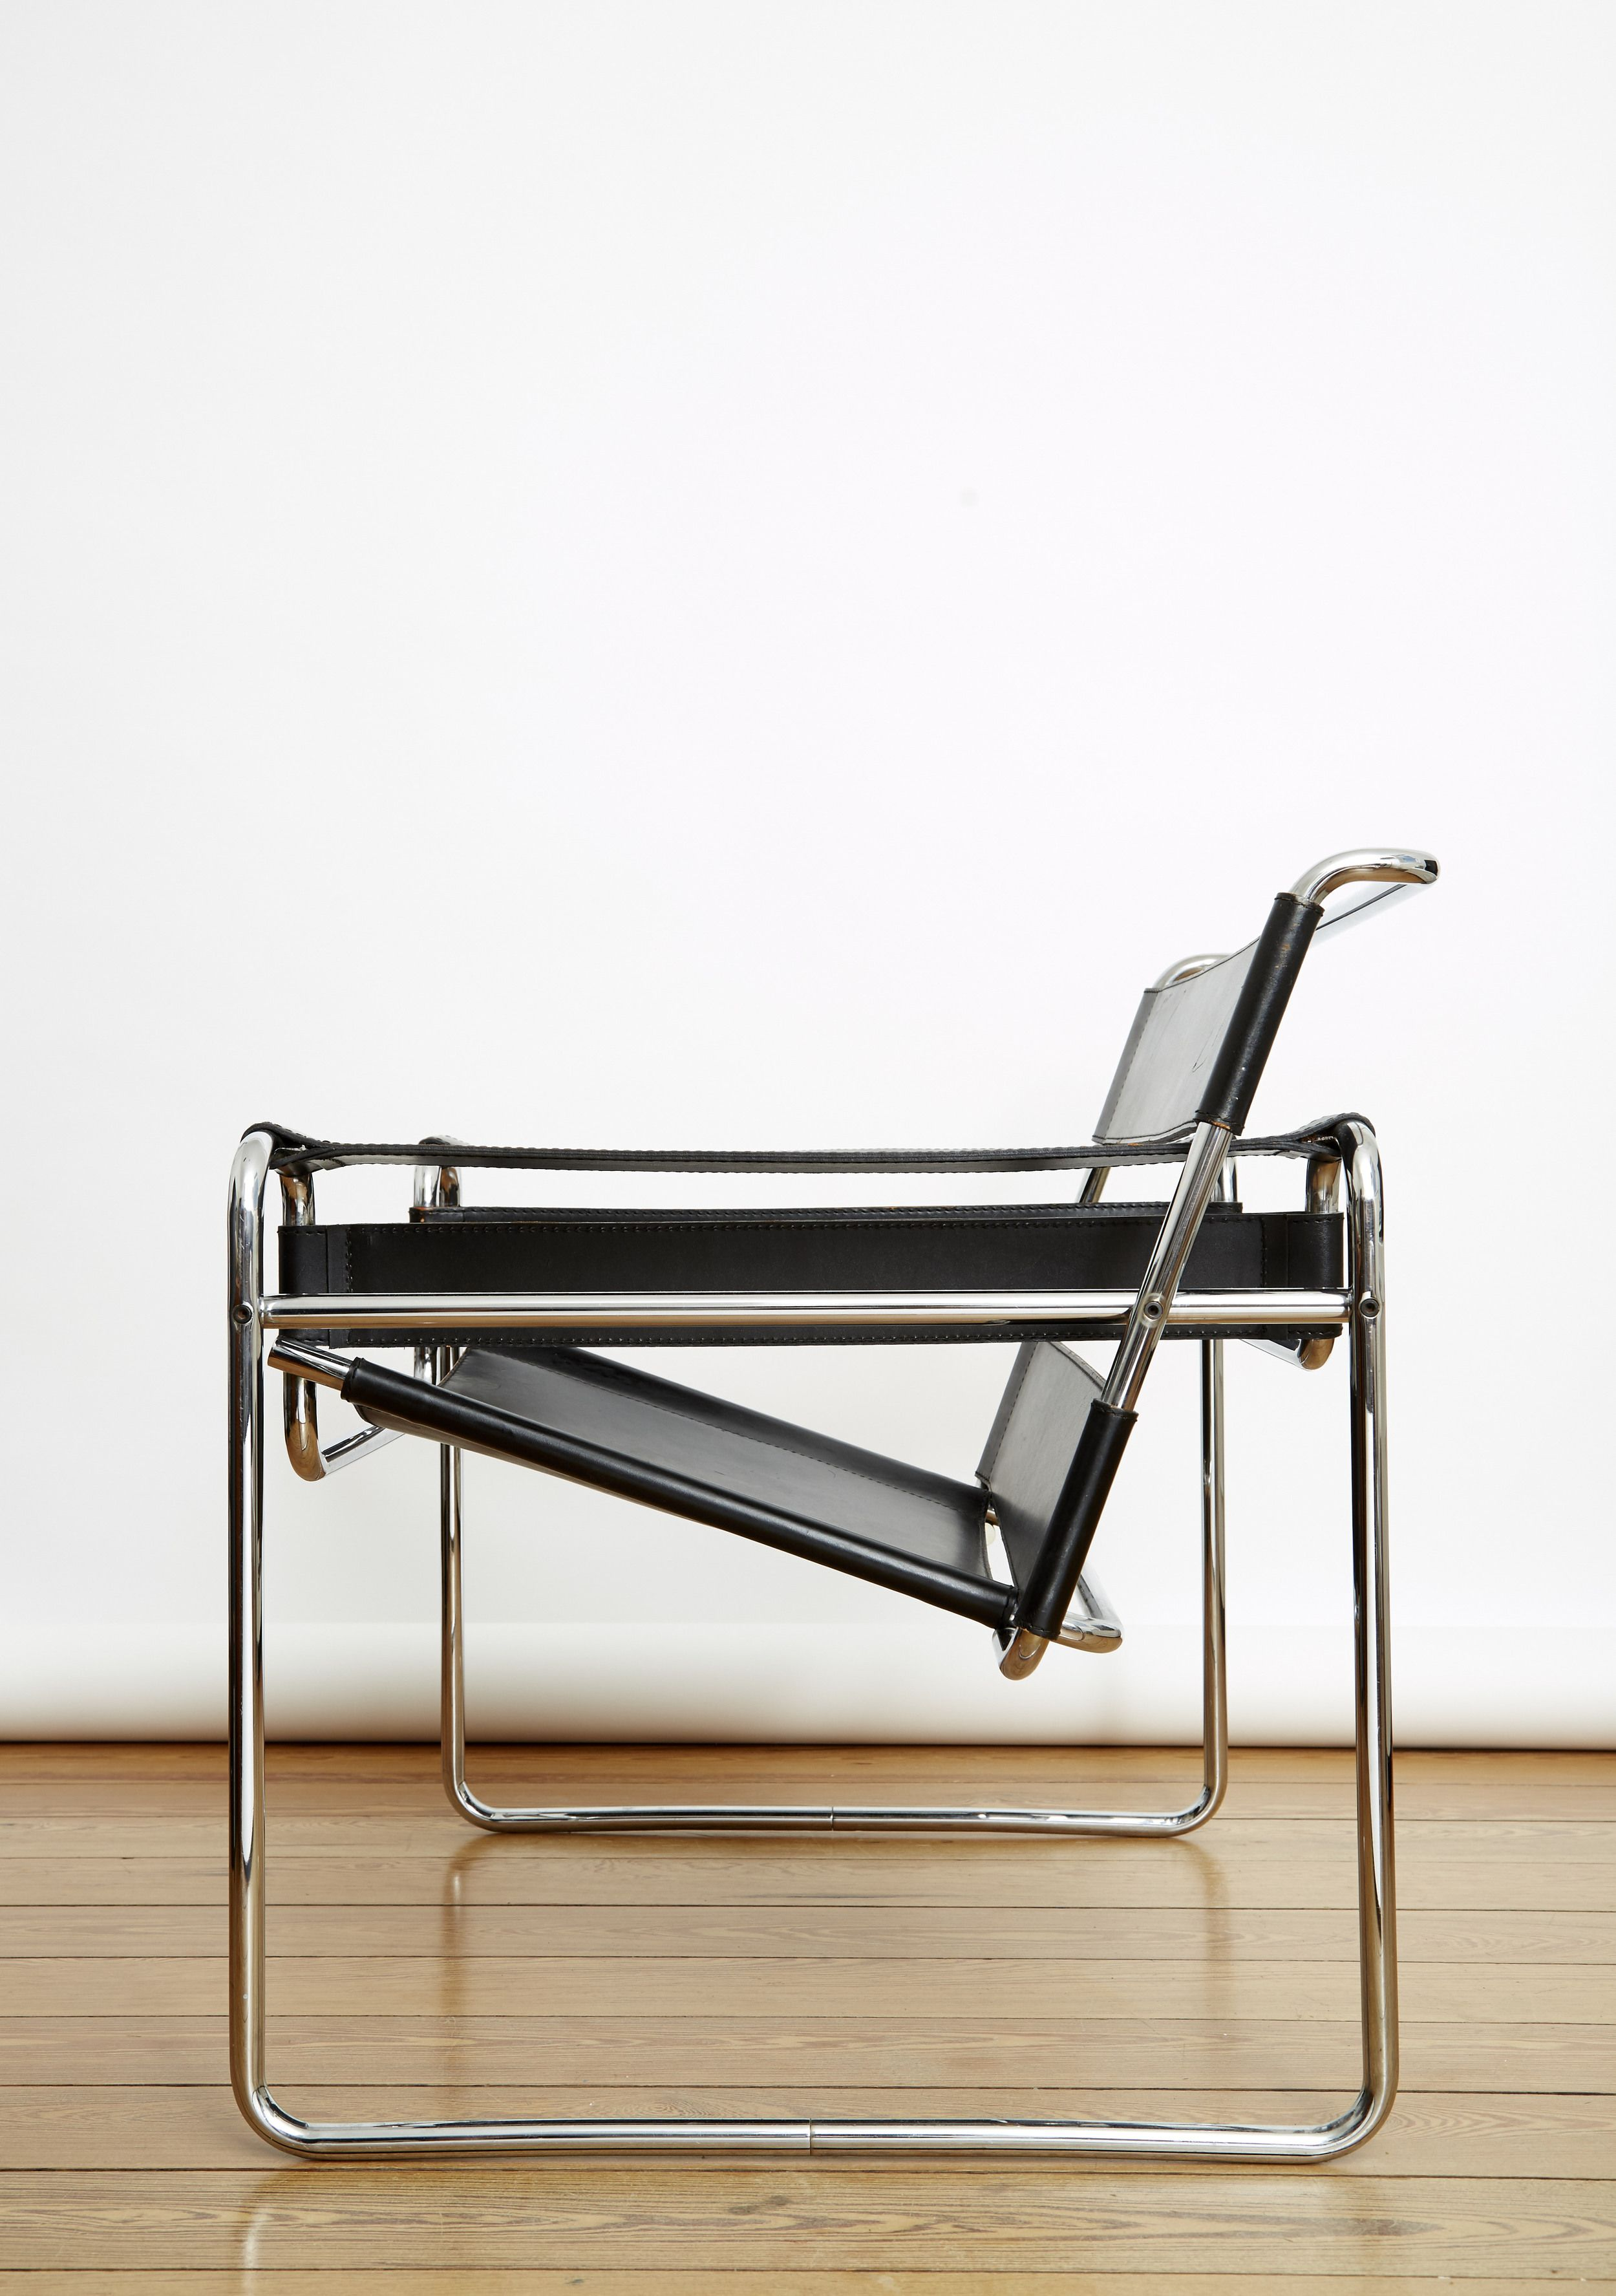 Wassily Chair Marcel Breuer The Wassily Chair Model B3 Chair 1925 1926 Steel